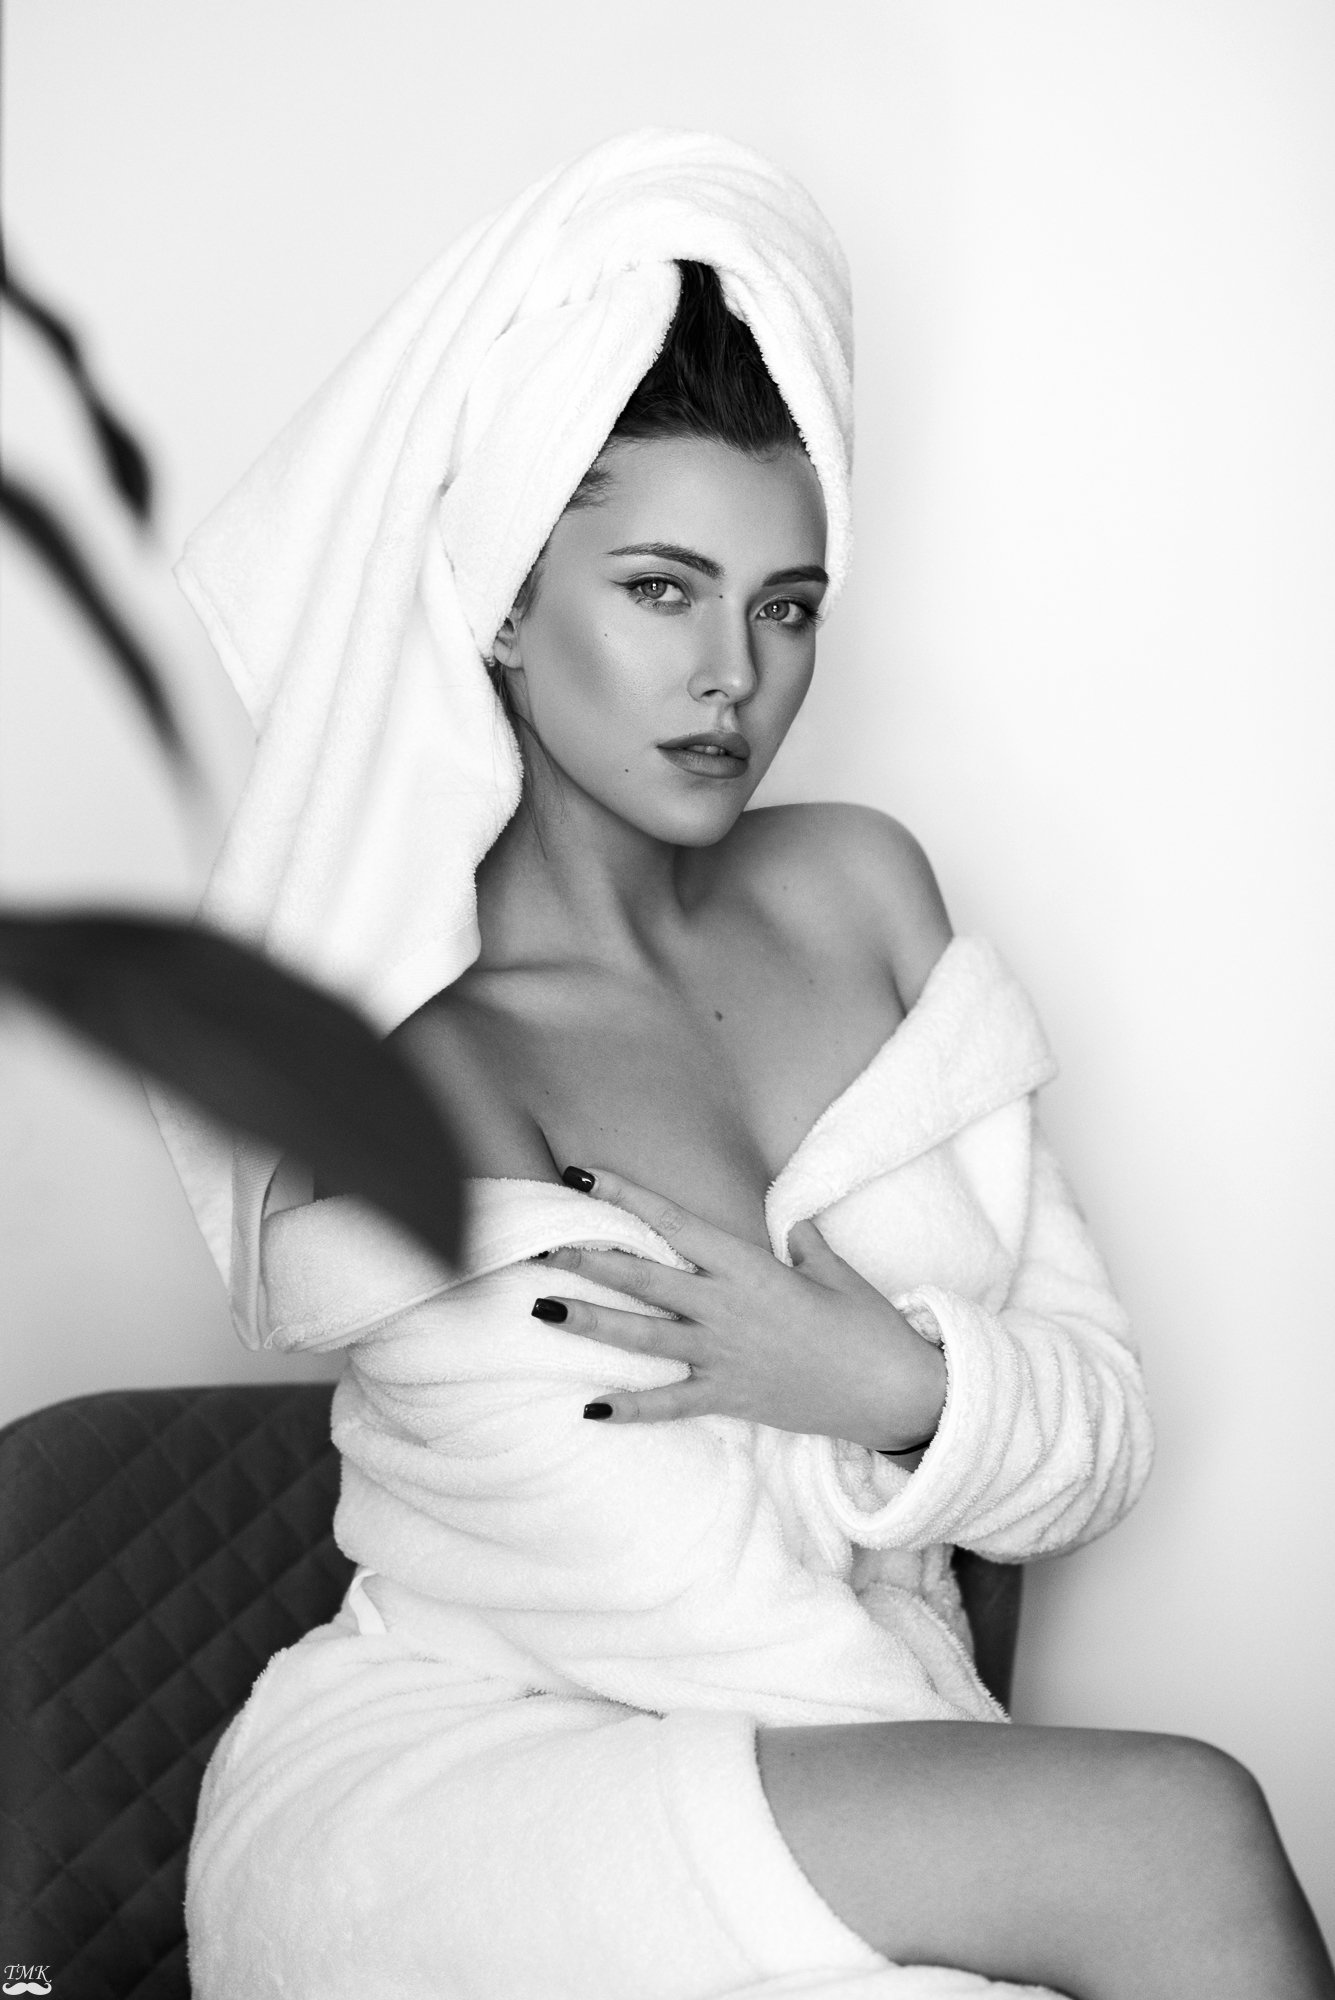 bw, black and white, portrait, fashion, monochrome, beauty, towel, woman, look, style , Tomash